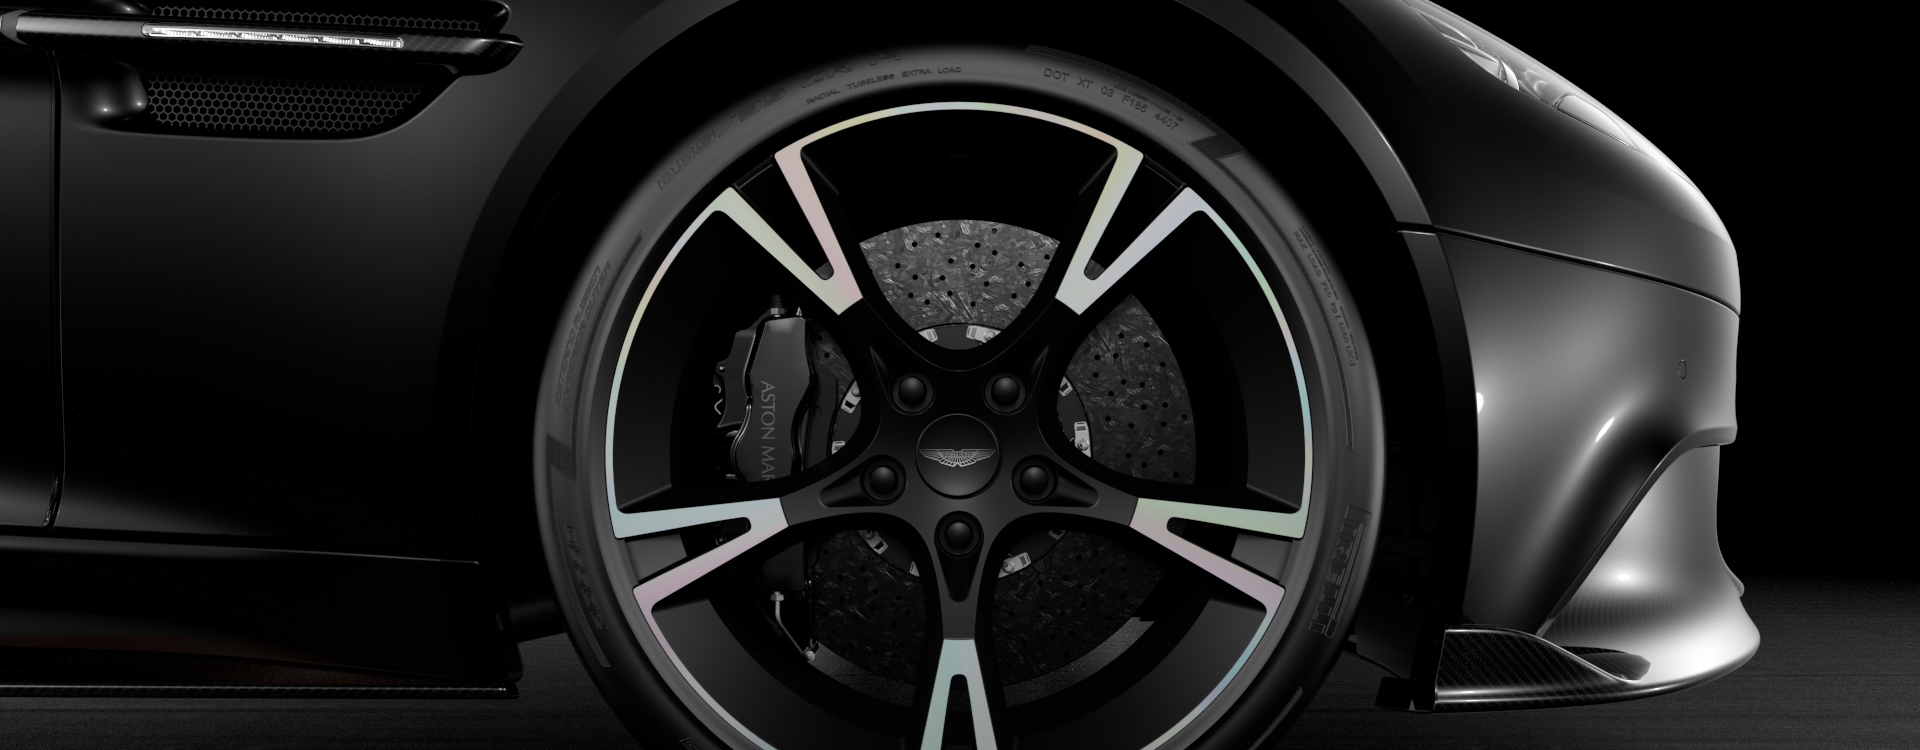 is this the last naturally-aspirated v12 aston martin? – wheels.ca